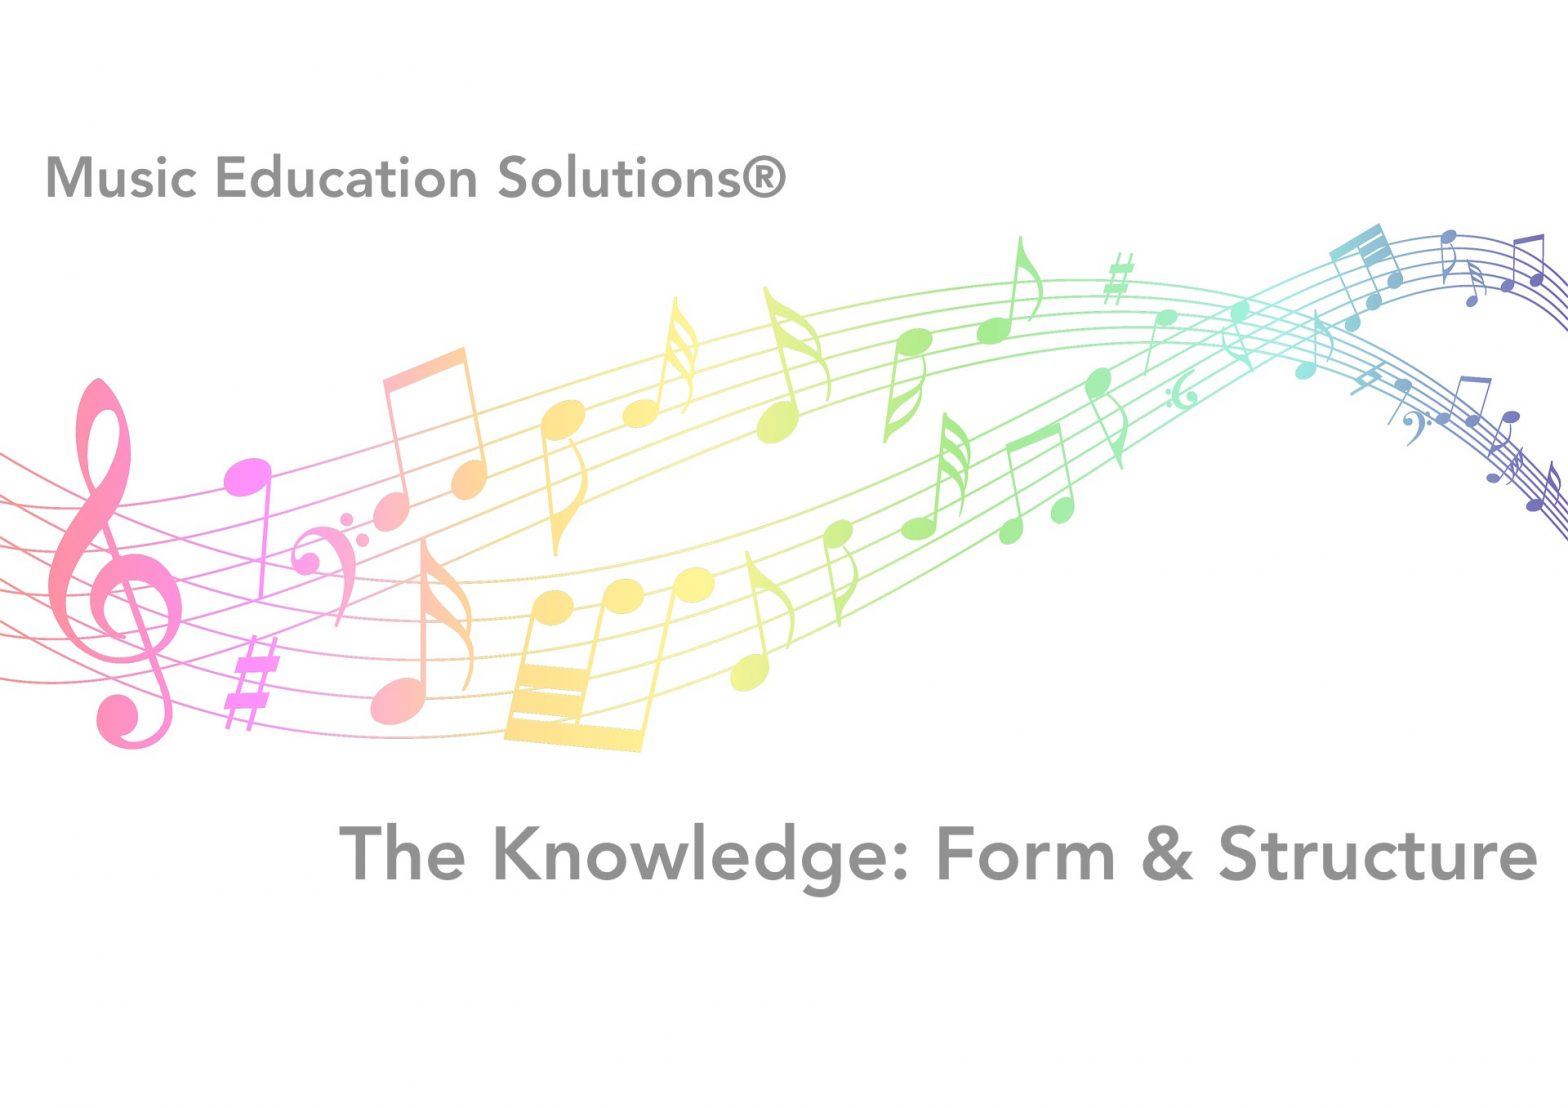 The Knowledge: Form & Structure Vocabulary